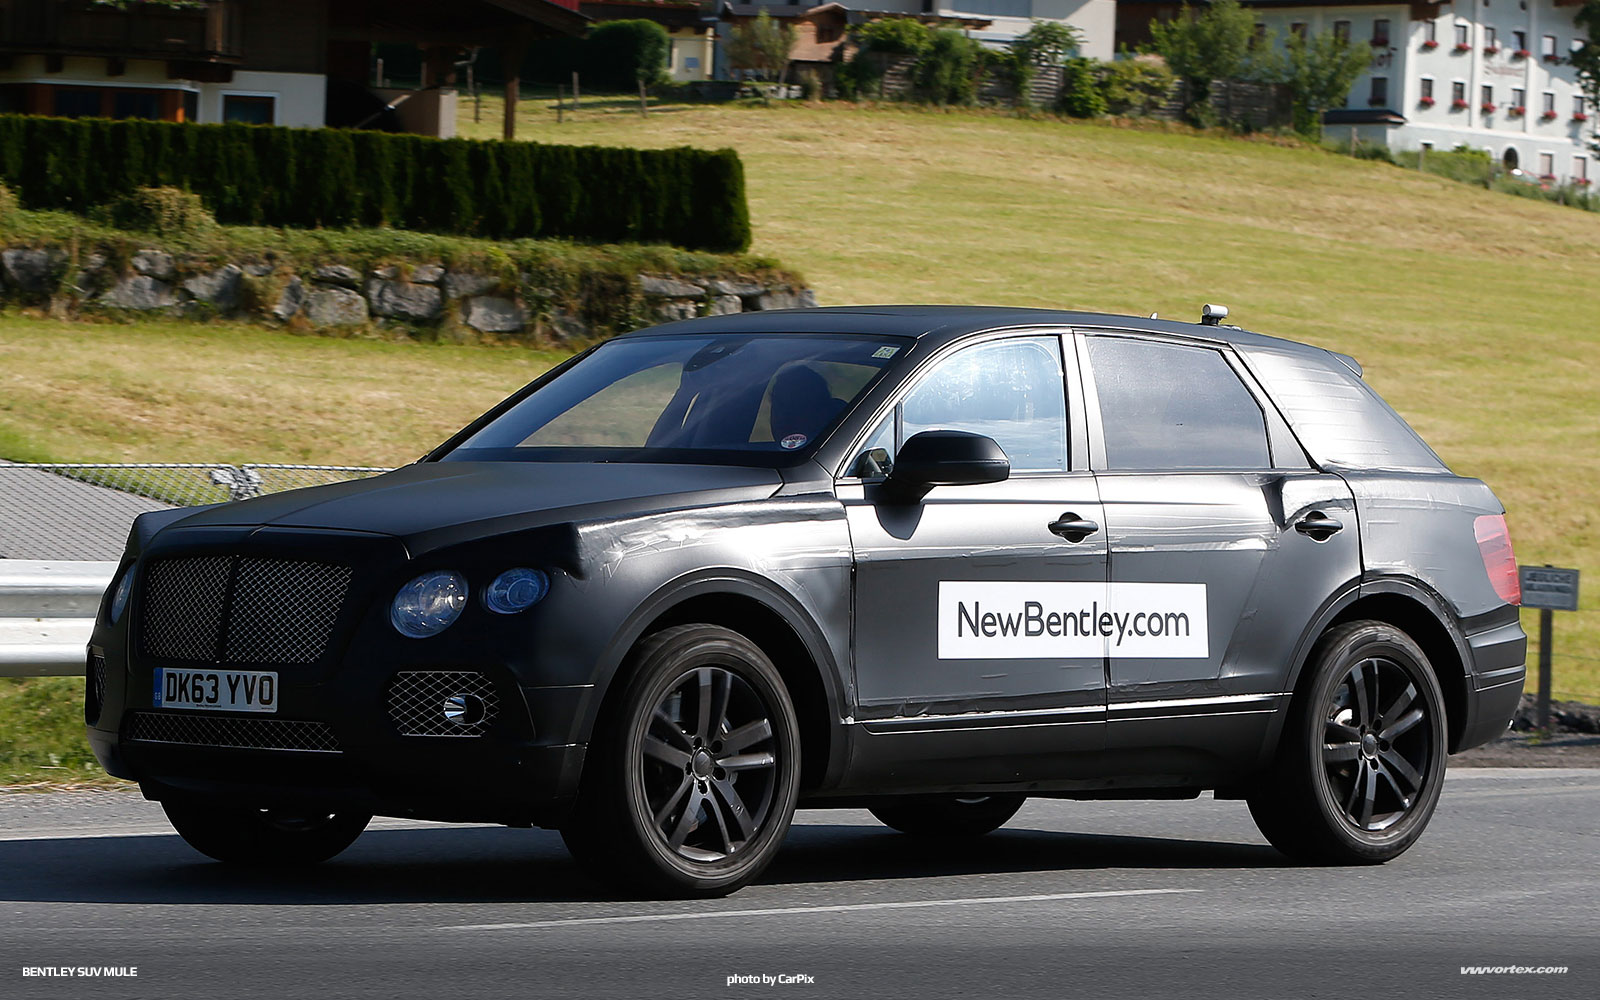 bentley-suv-mule-spy-photos-376